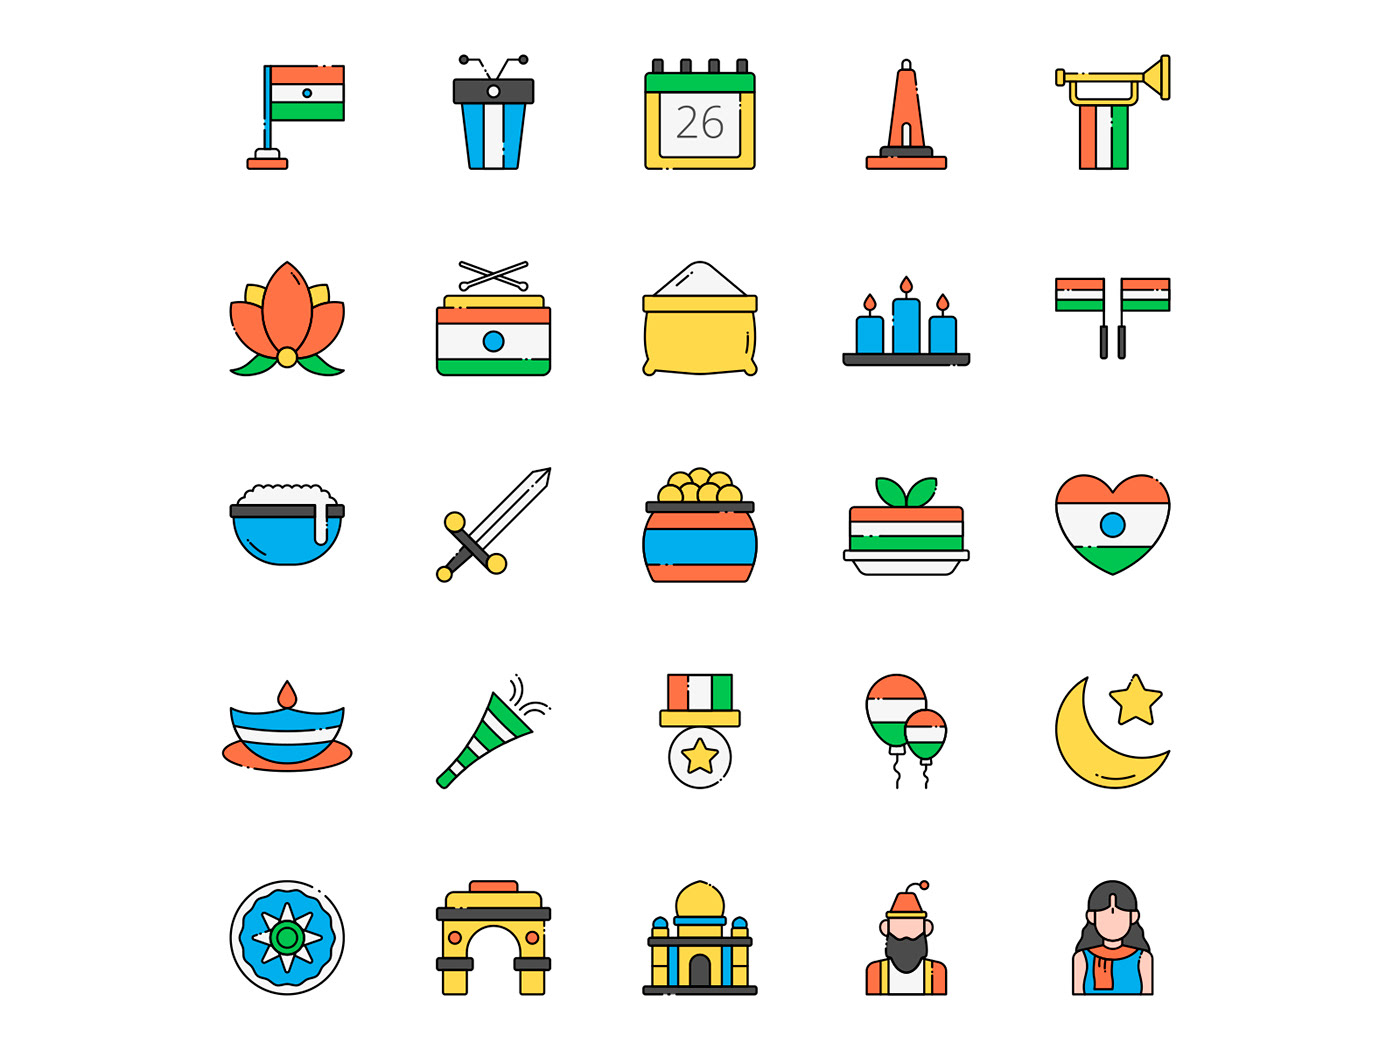 freebie icon design  icons download icons pack icons set India india icon india vector vector design vector icon